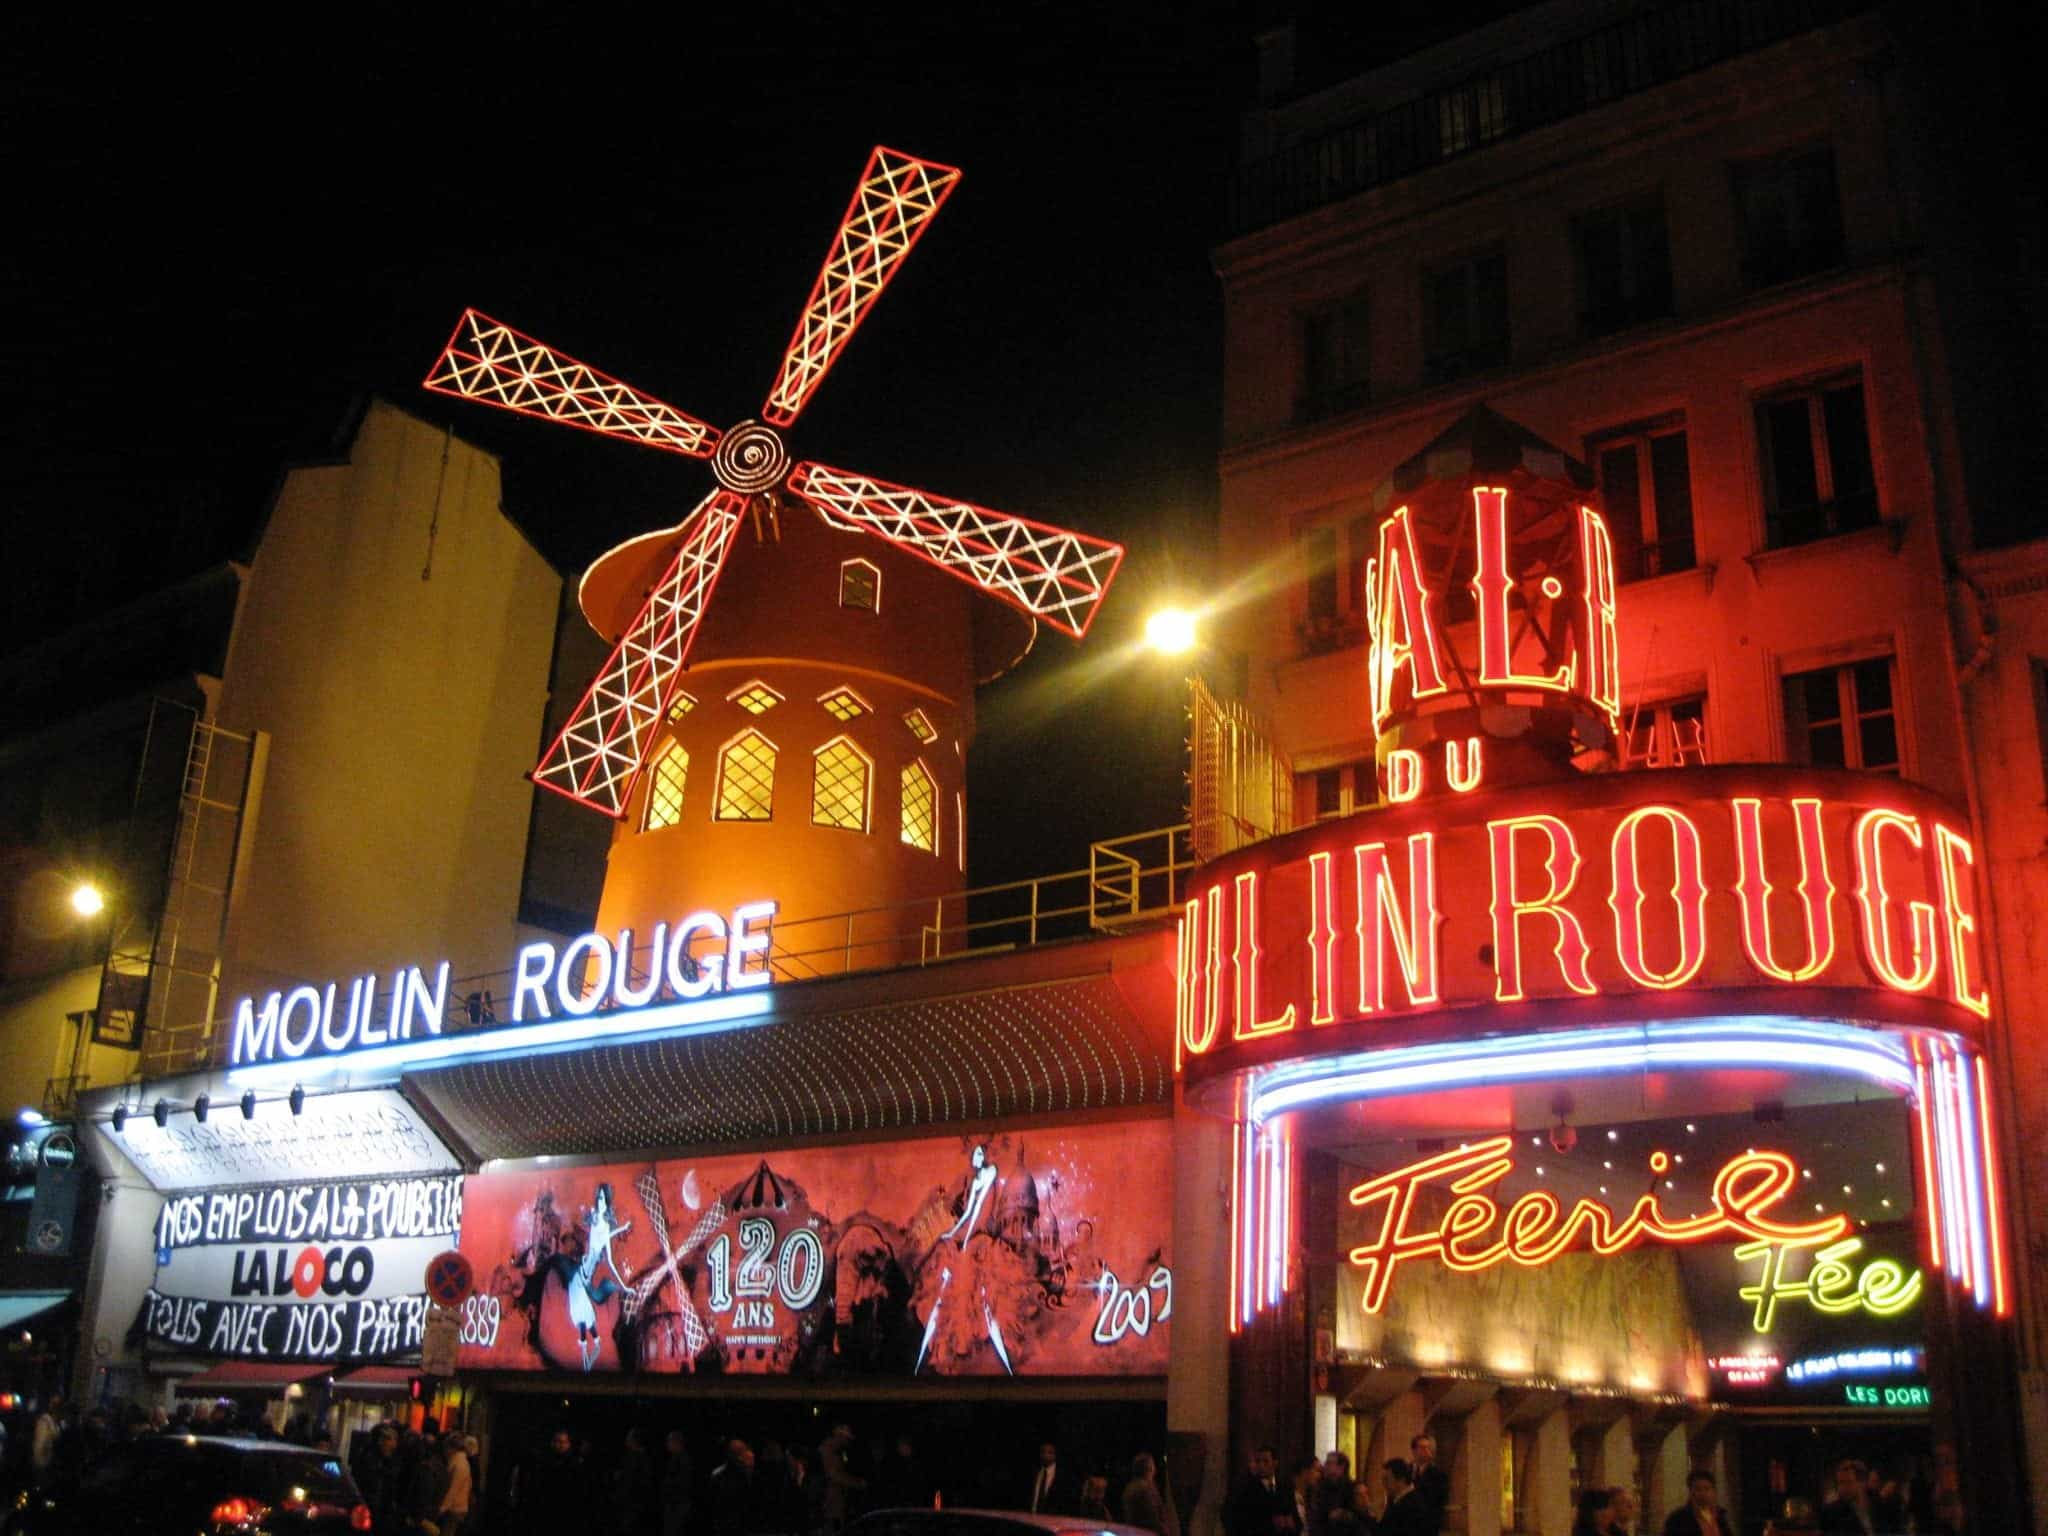 Paris Itinerary: Moulin Rouge